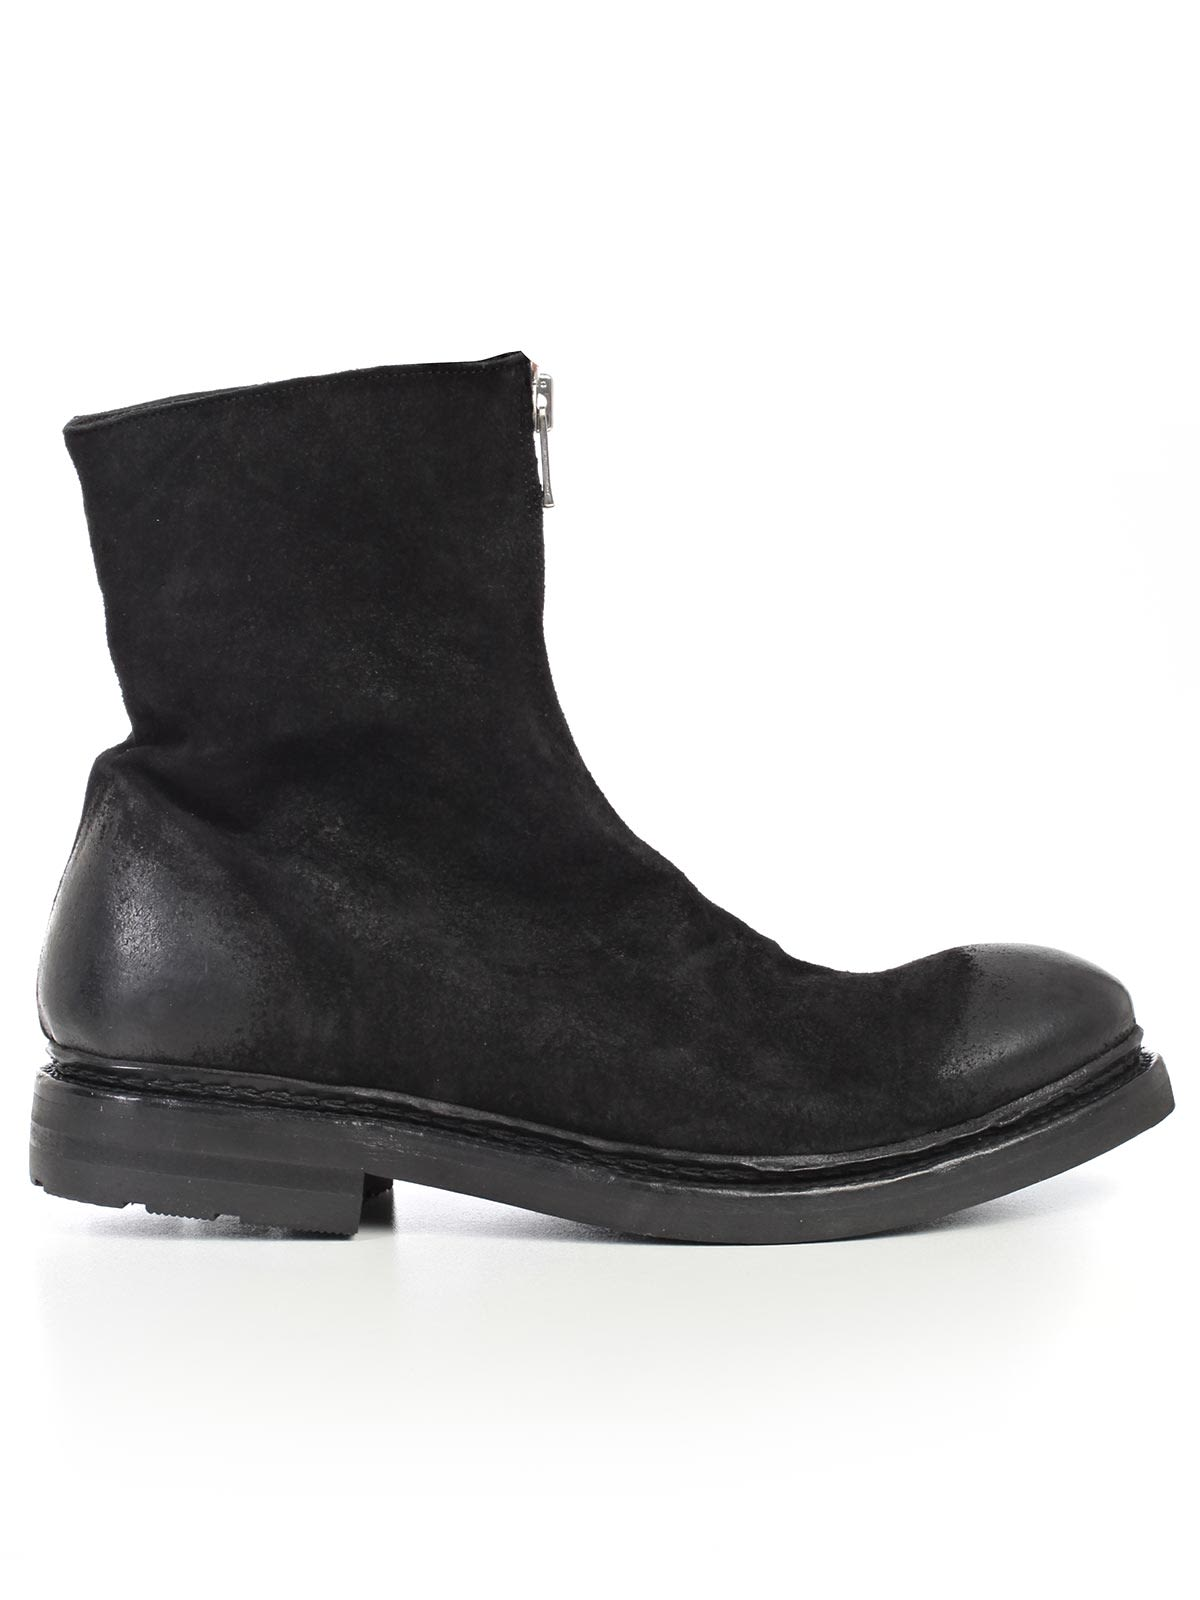 The Last Conspiracy Boots